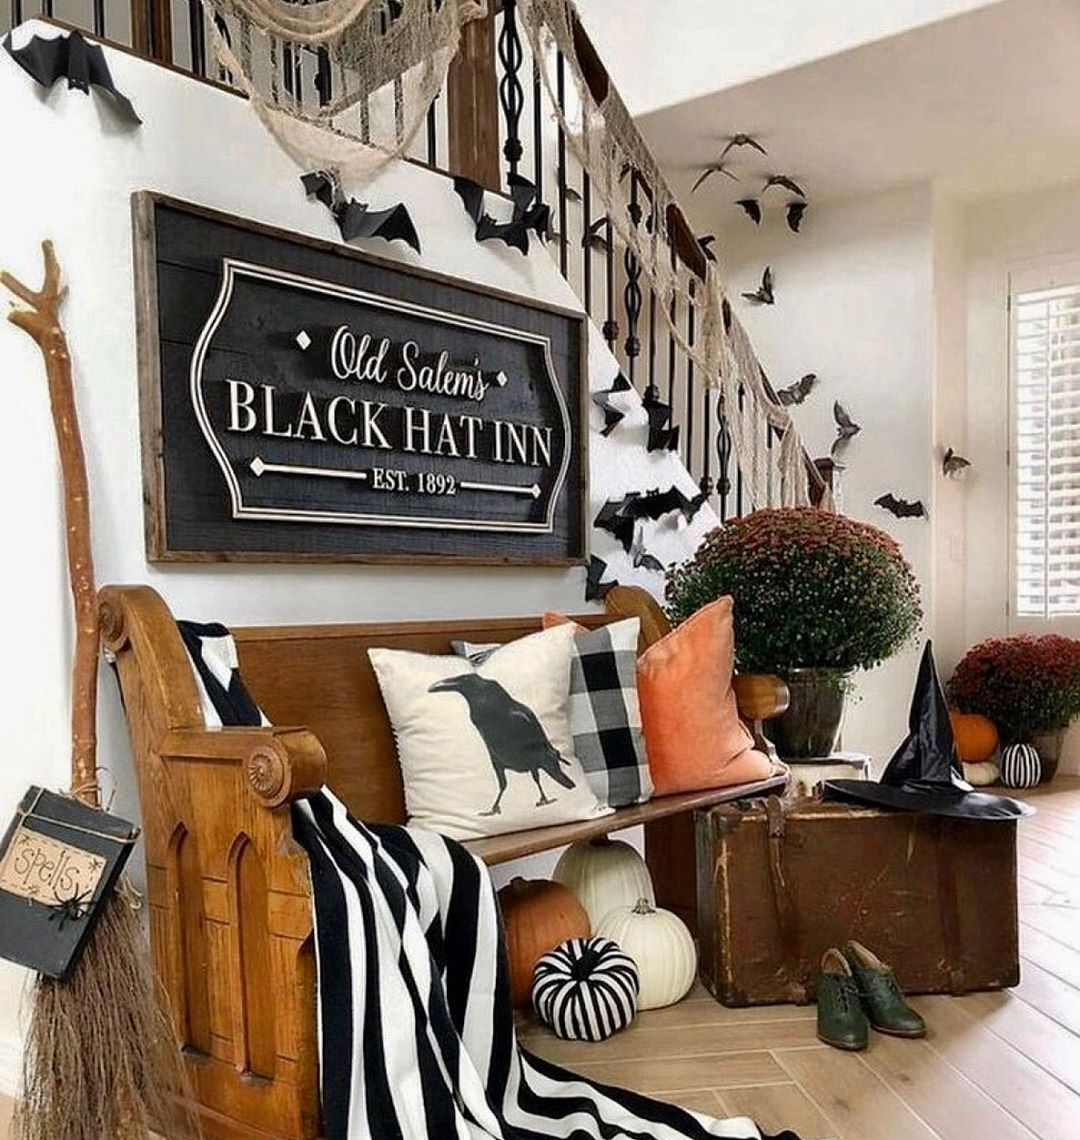 Spooky Halloween Decor Impress Your Guests With This Amount Of Detail Photooftheday Halloween Living Room Halloween Home Decor Halloween Decorations Indoor